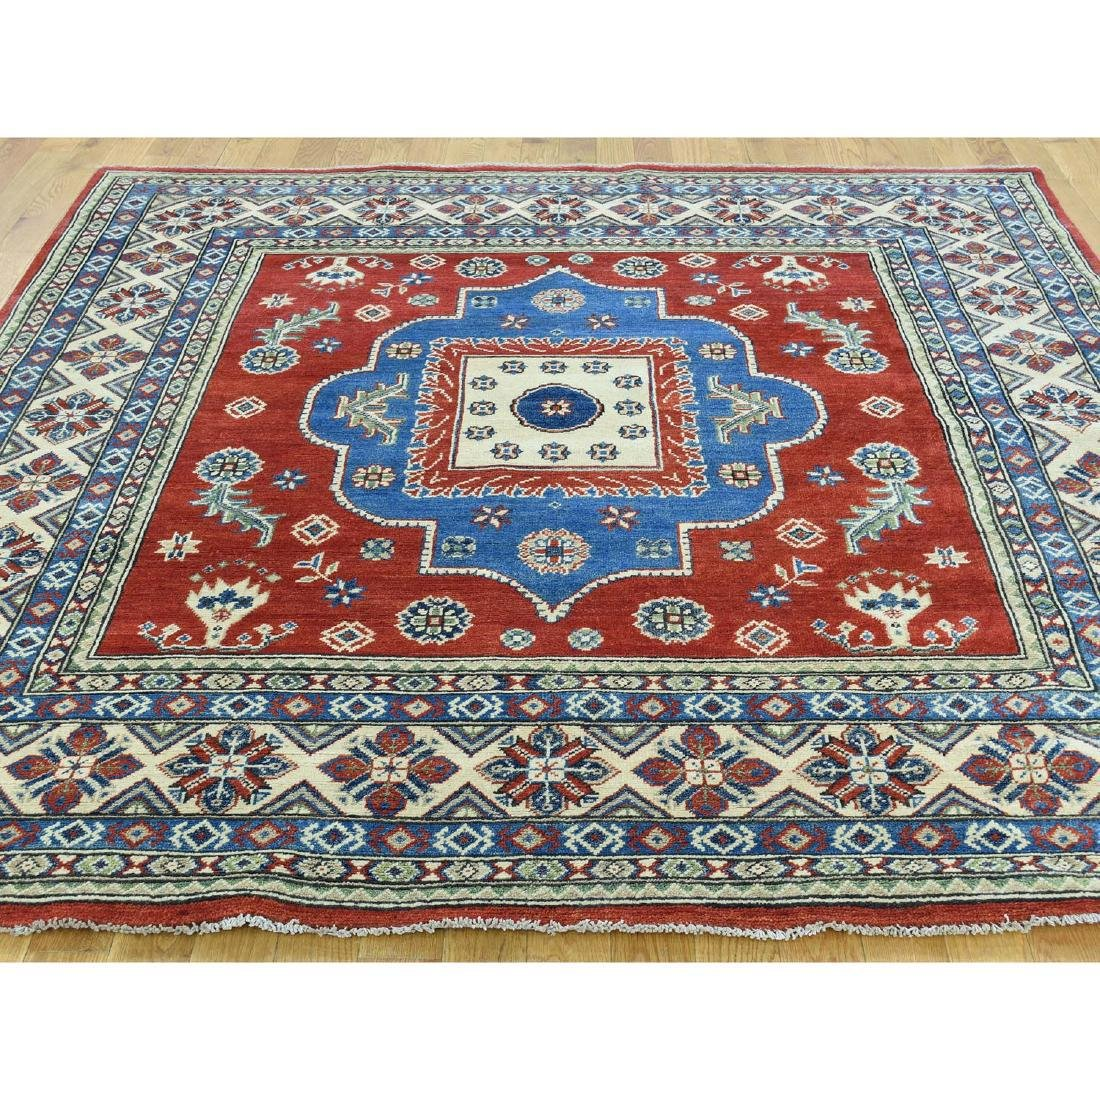 Hand-Knotted Kazak Square Tribal Design Rug 6.7x6.7 - 2